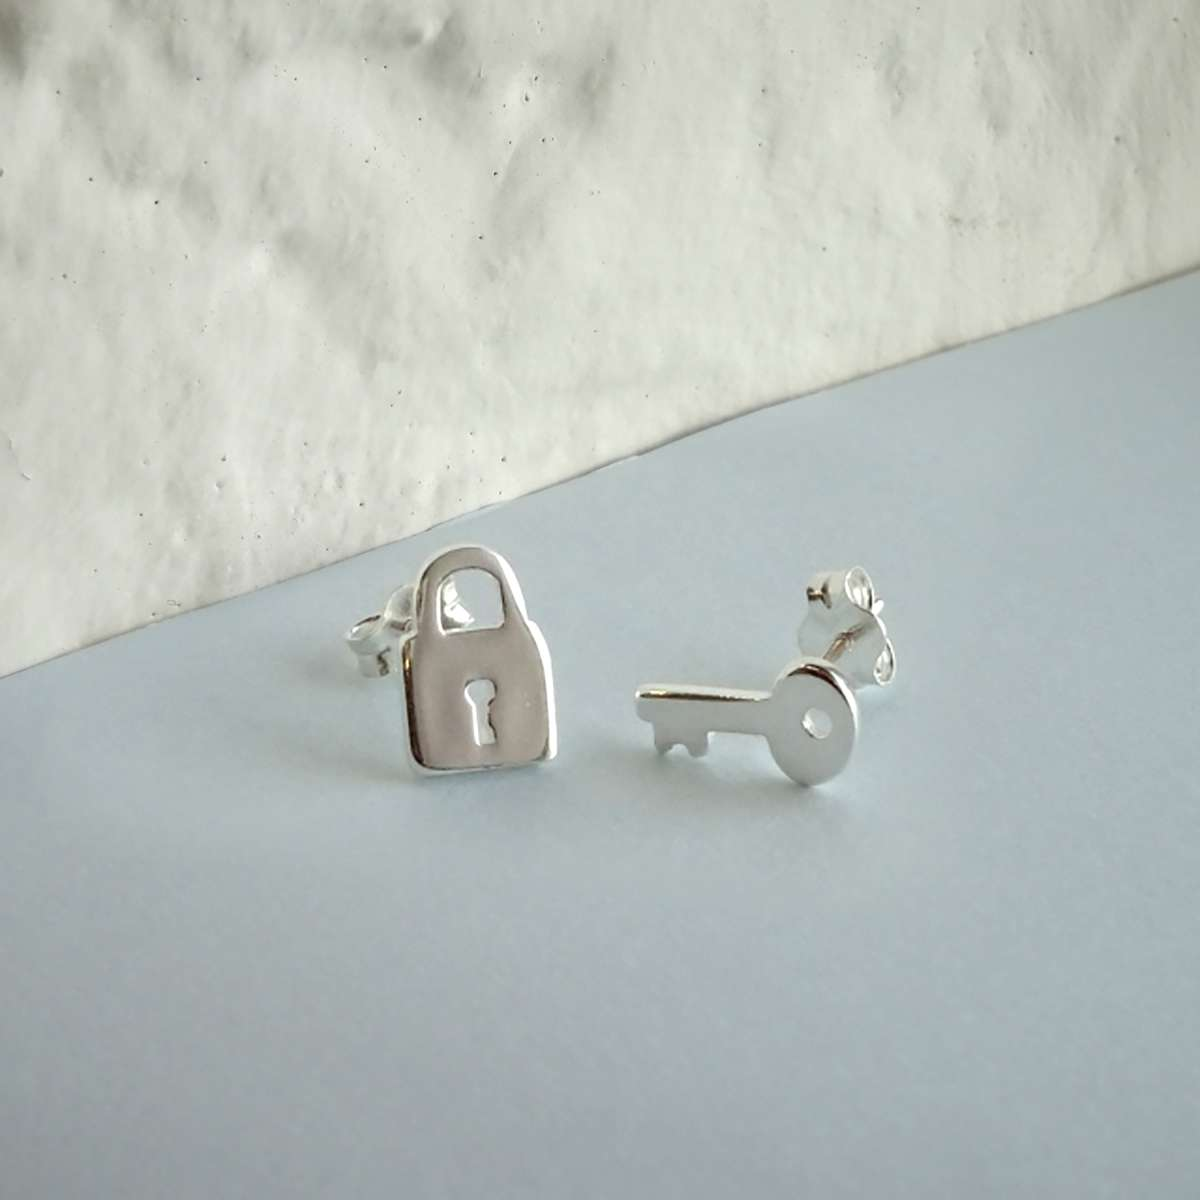 Alterative image for Sterling Silver Key Padlock Stud Earrings